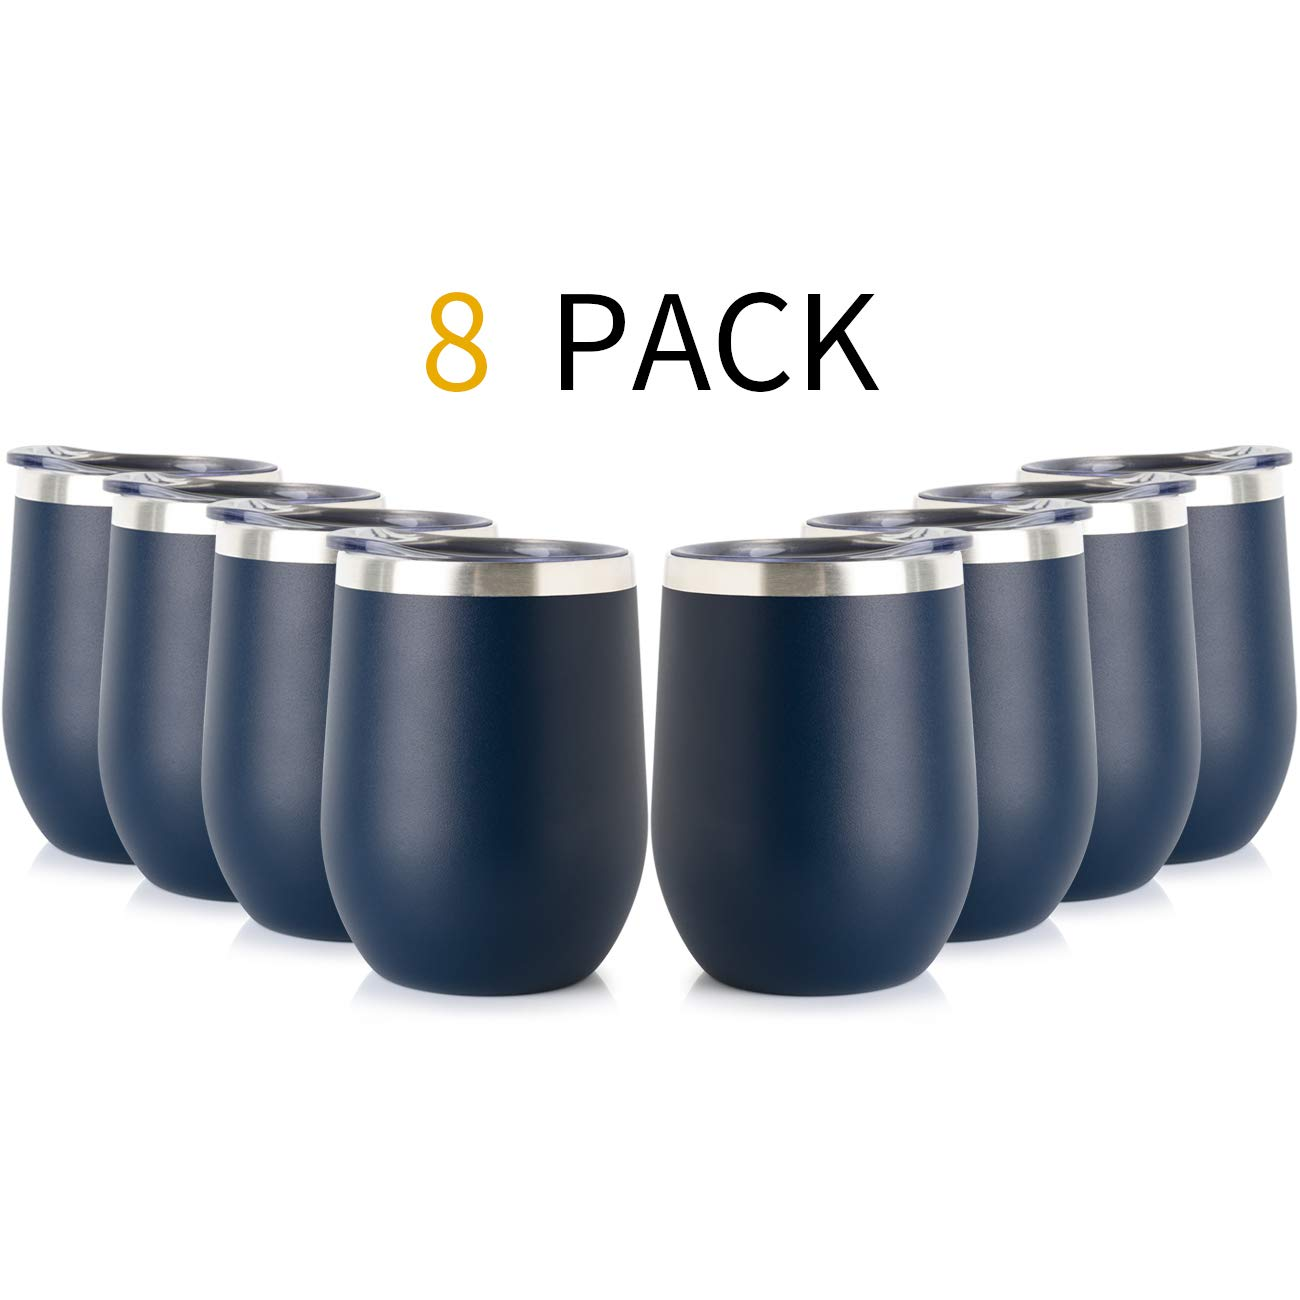 ONEB Stainless Steel Wine Tumbler with Lid, 12 OZ | Double Wall Vacuum Insulated Travel Tumbler Cup for Coffee, Wine, Cocktails, Ice Cream Cup With Lid (Navy, 12OZ-8pack) by ONEB (Image #1)